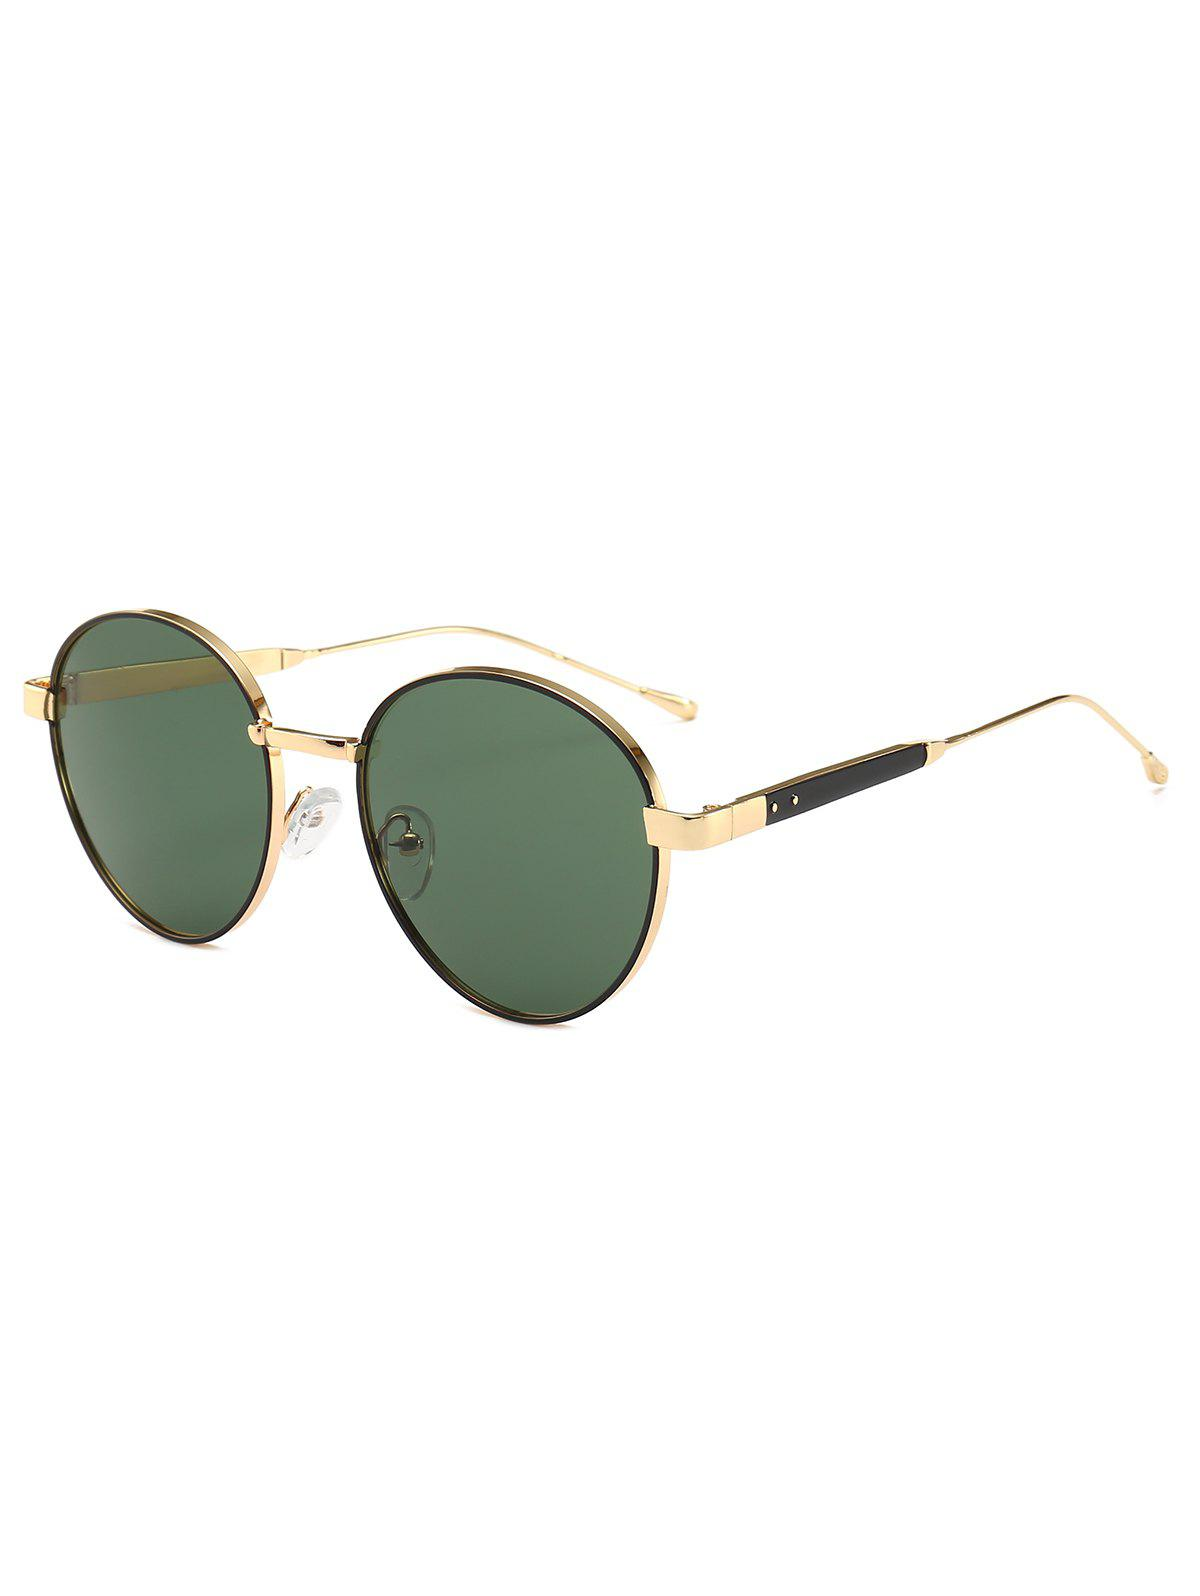 Buy Metal Frame Round Design Sunglasses